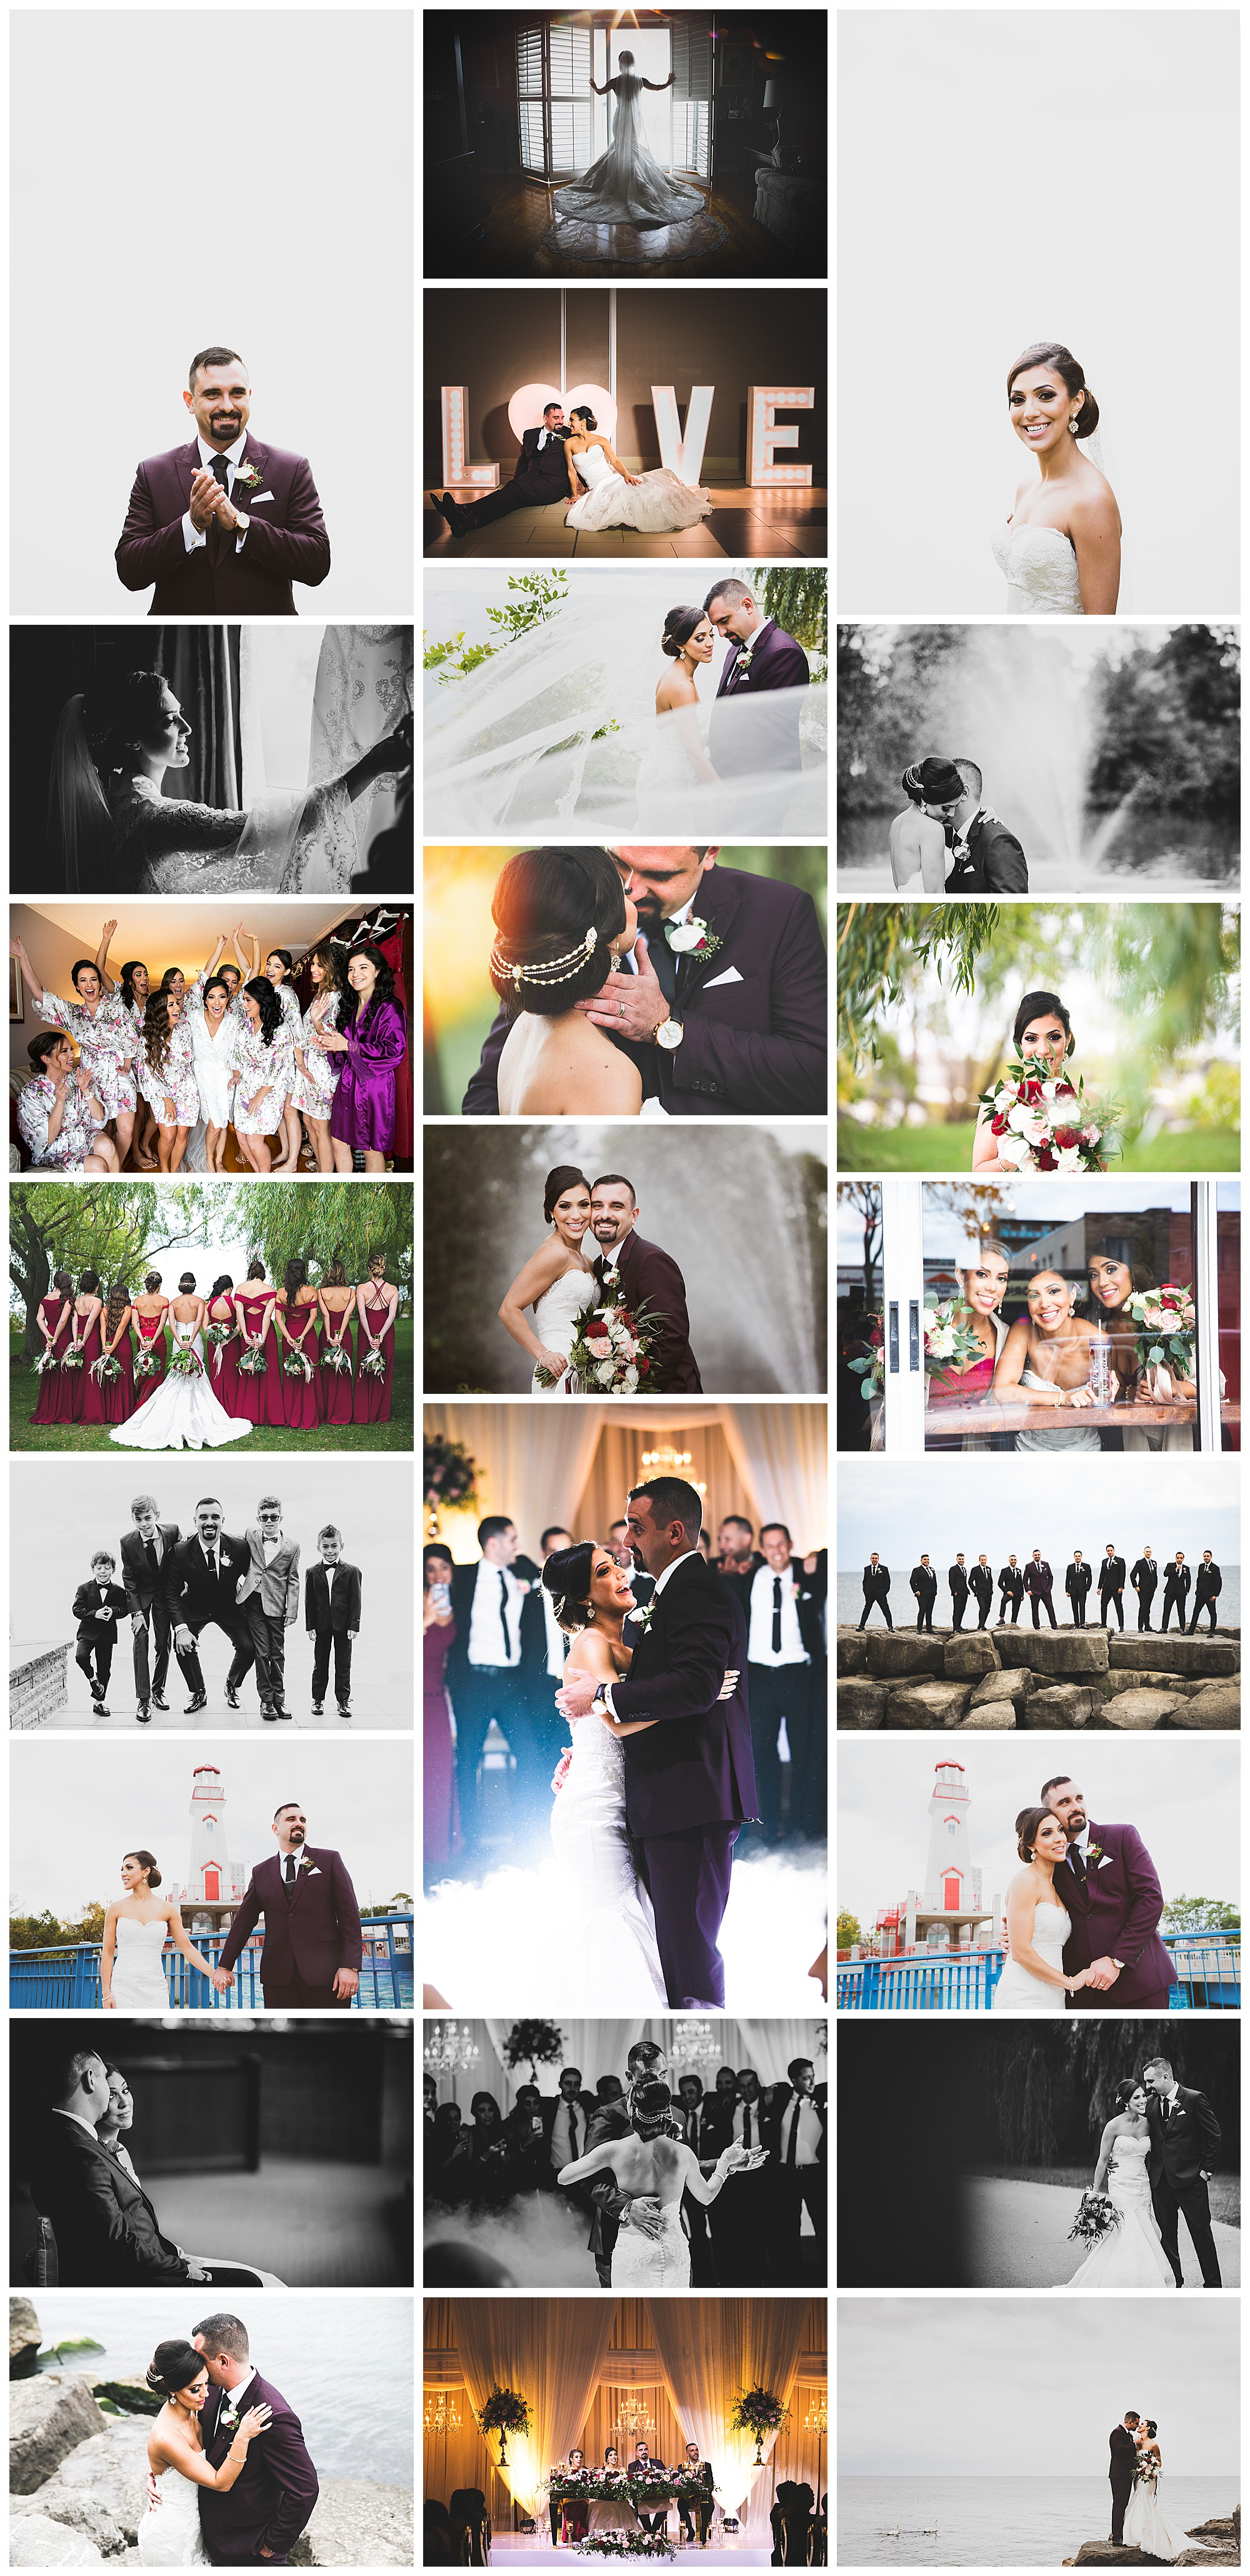 Port Credit & Paramont Event Space, Mississauga, Ontario wedding photography by VanDaele & Russell